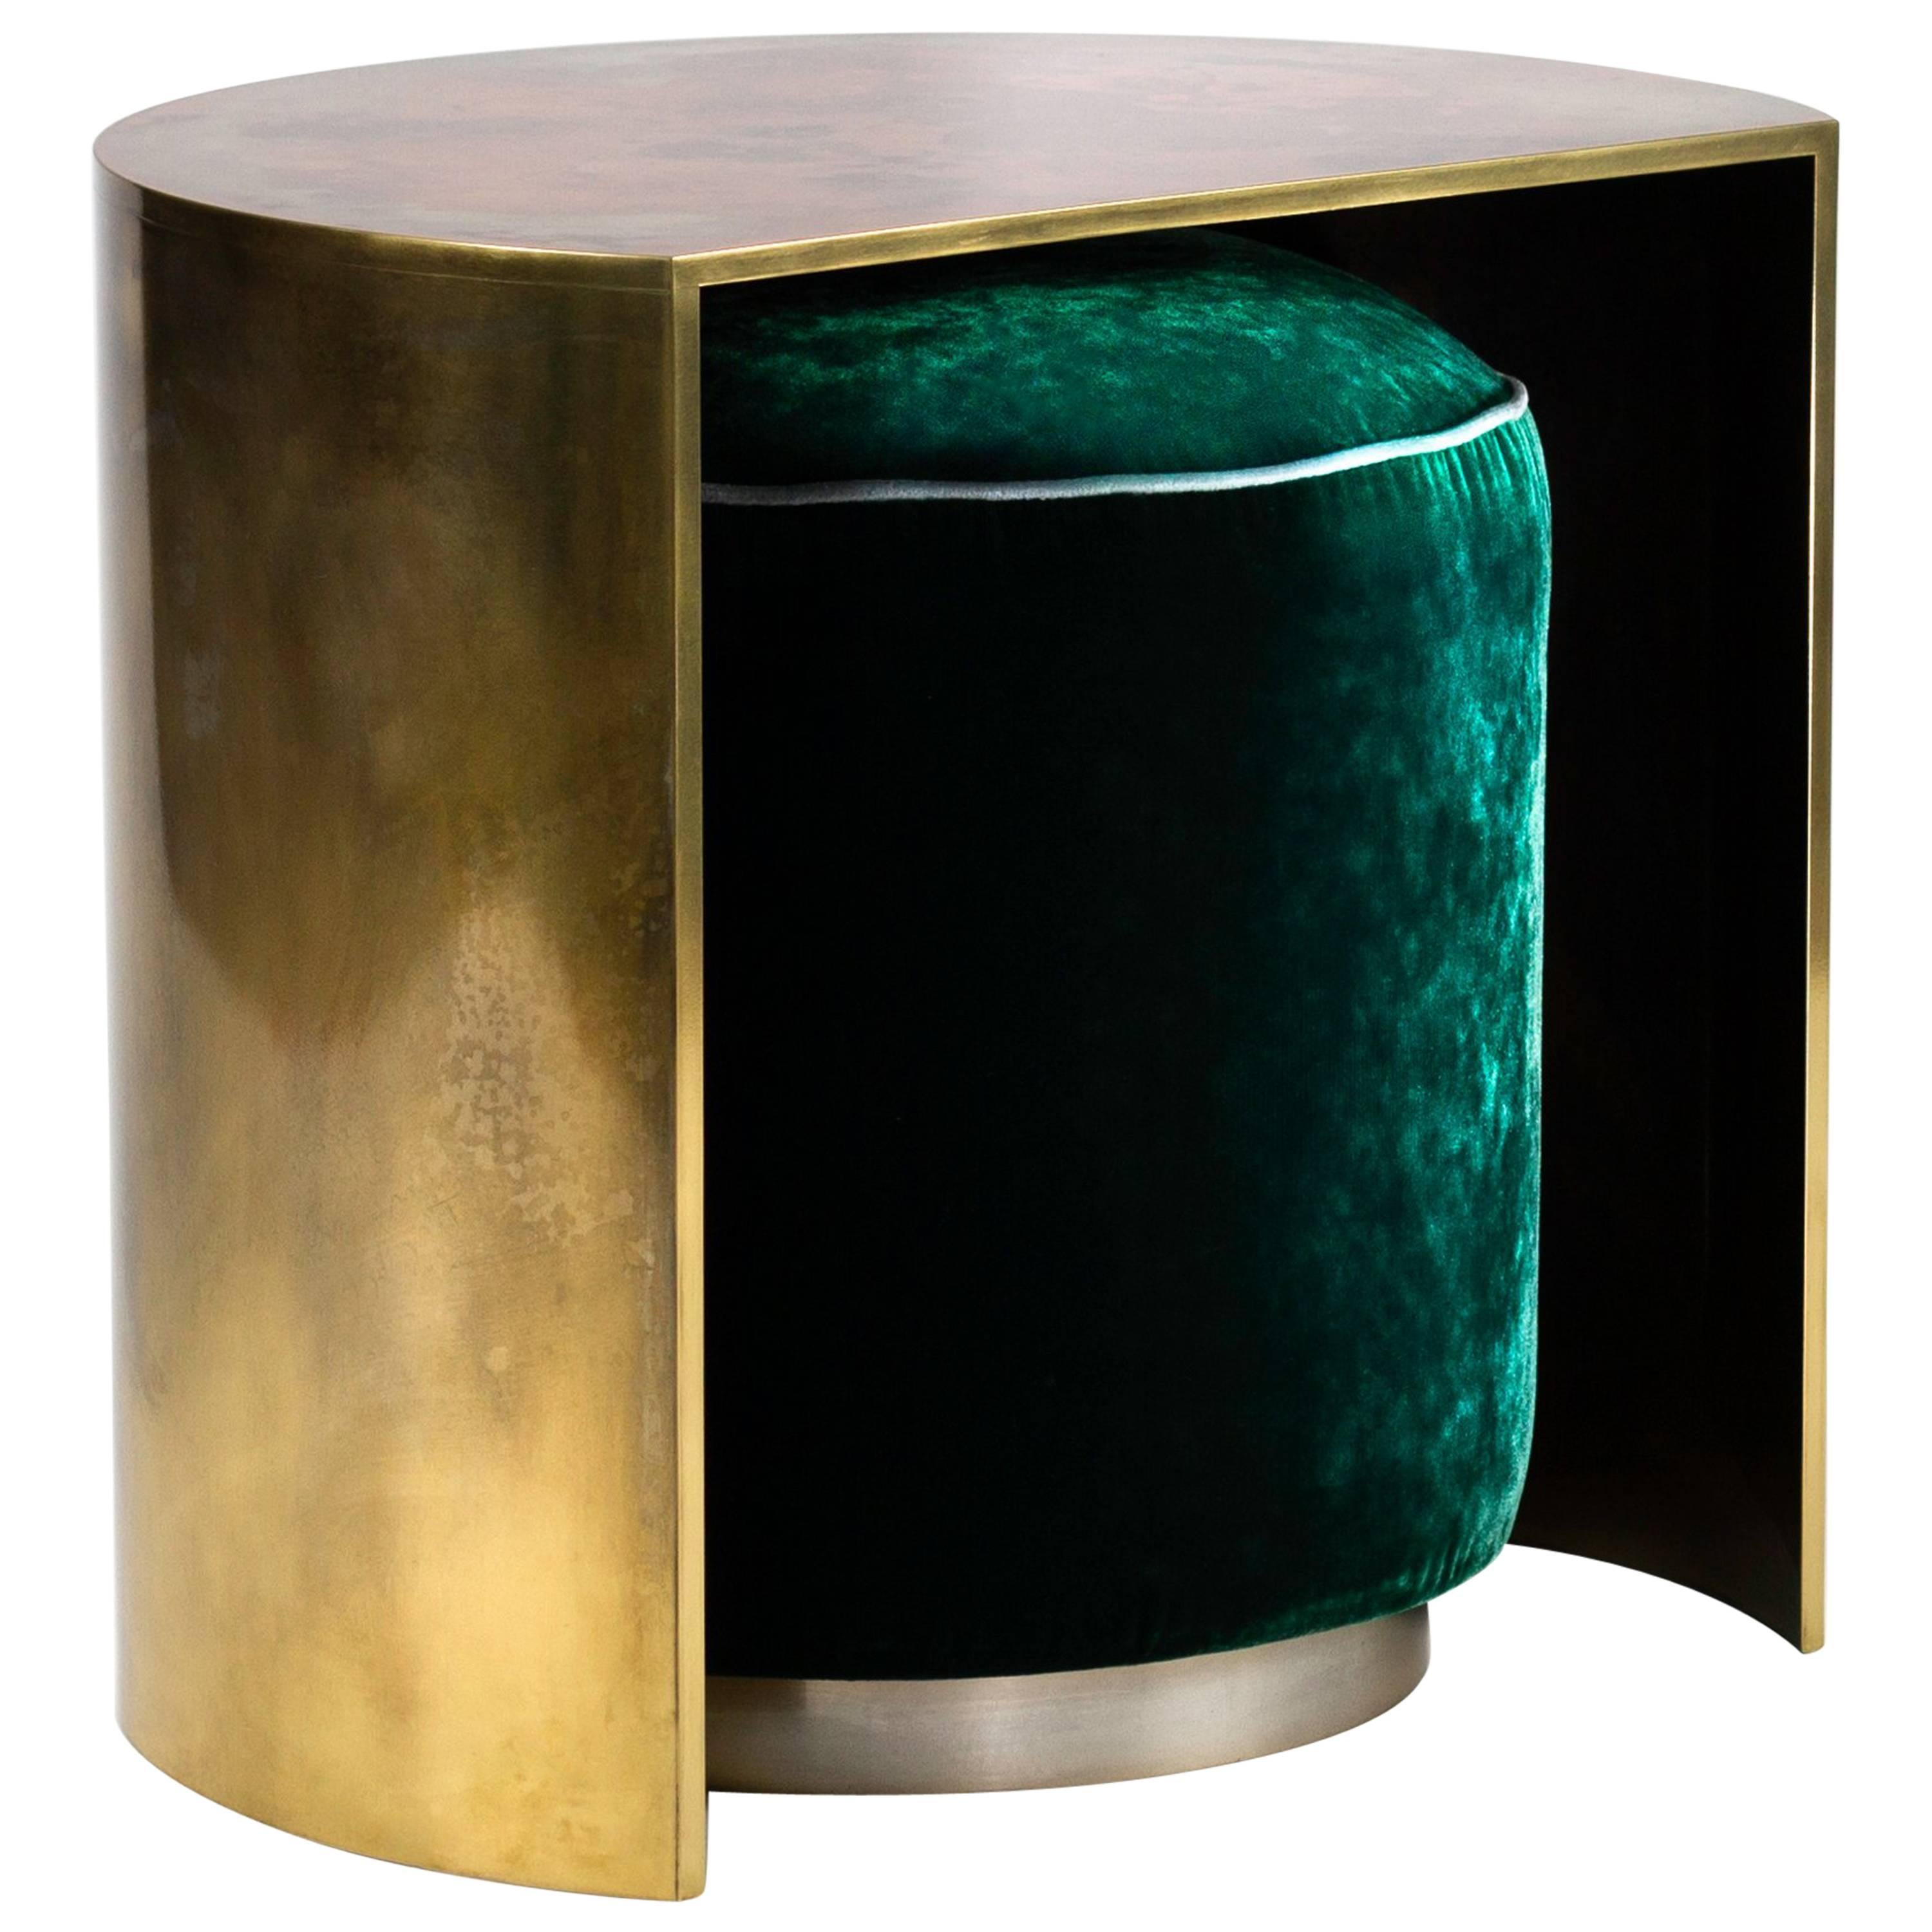 Delicieux Hand Patinated Brass Demilune Cocktail Side Table With Hideaway Velvet Pouf